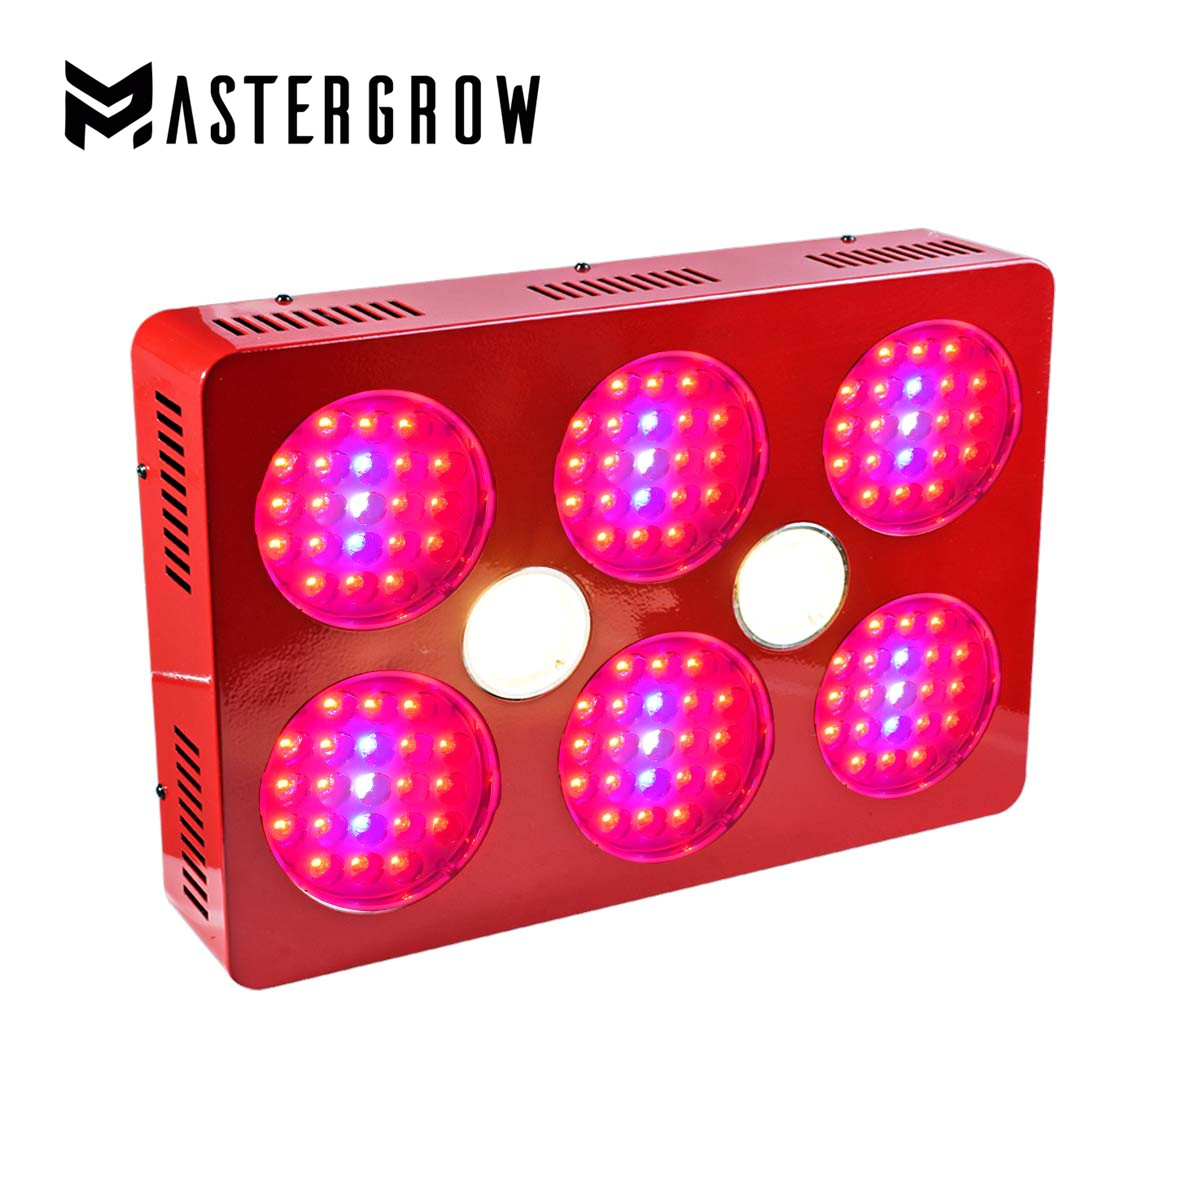 Punctual Venesun Led Grow Light Panel 1200w Full Spectrum With Cob Led Growing Lamp Adjustable Wifi Control For Indoor Plant Veg & Bloom Back To Search Resultslights & Lighting